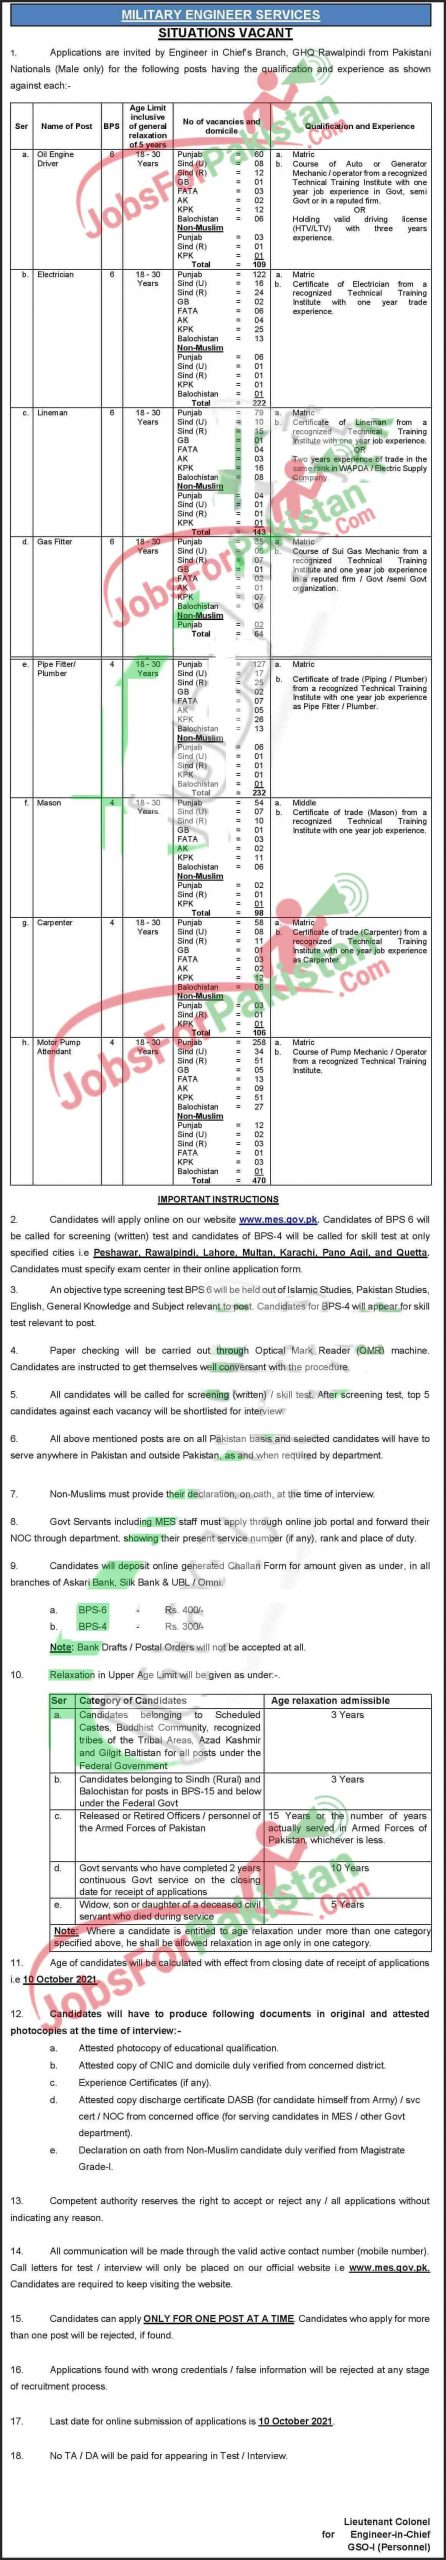 Military Engineering Services (MES) Jobs 2021 Details